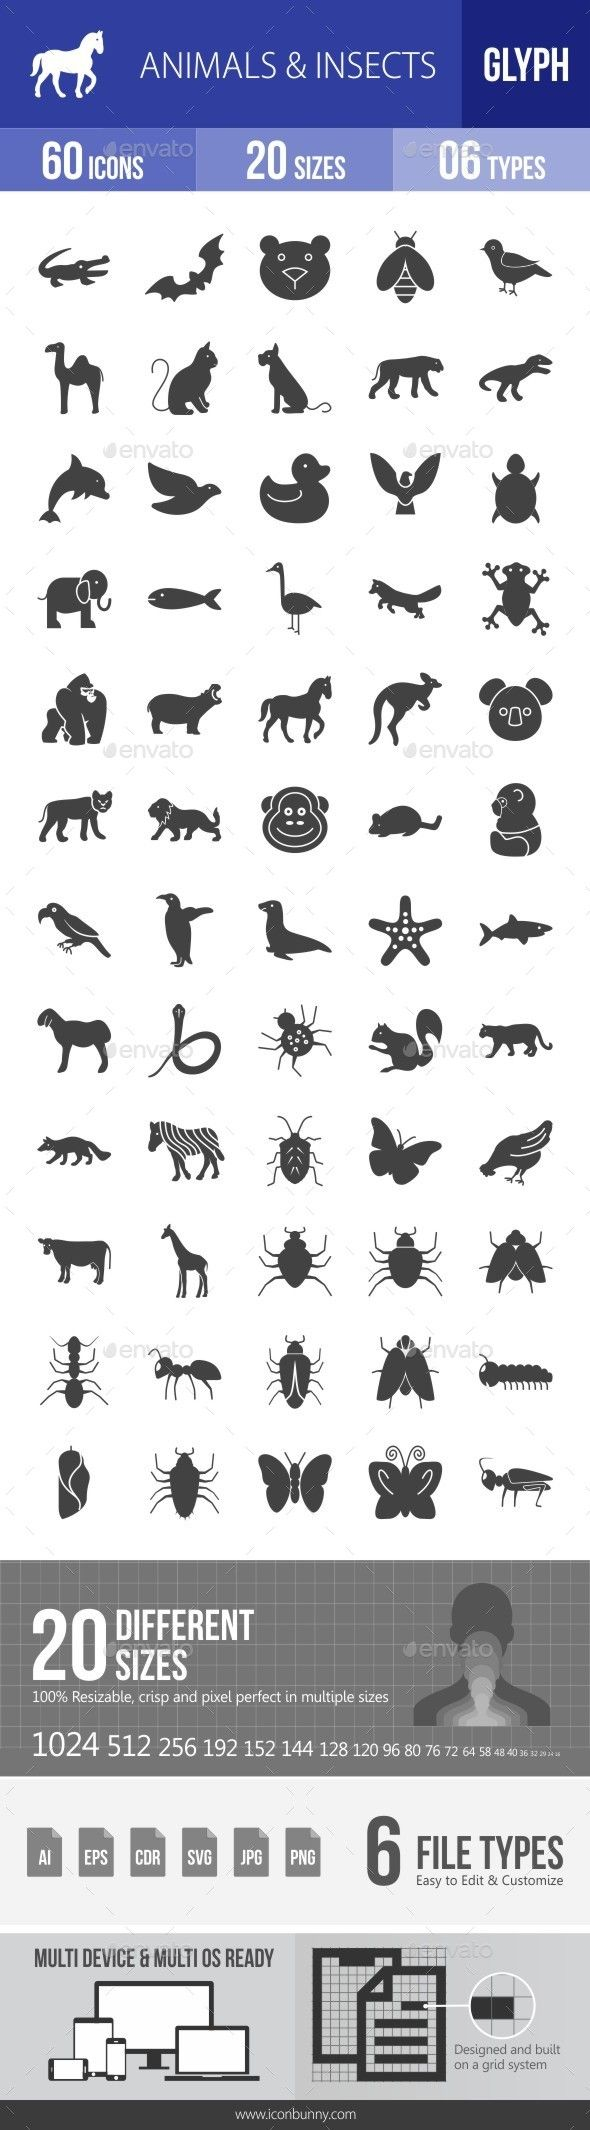 Animals & Insects Glyph Icons